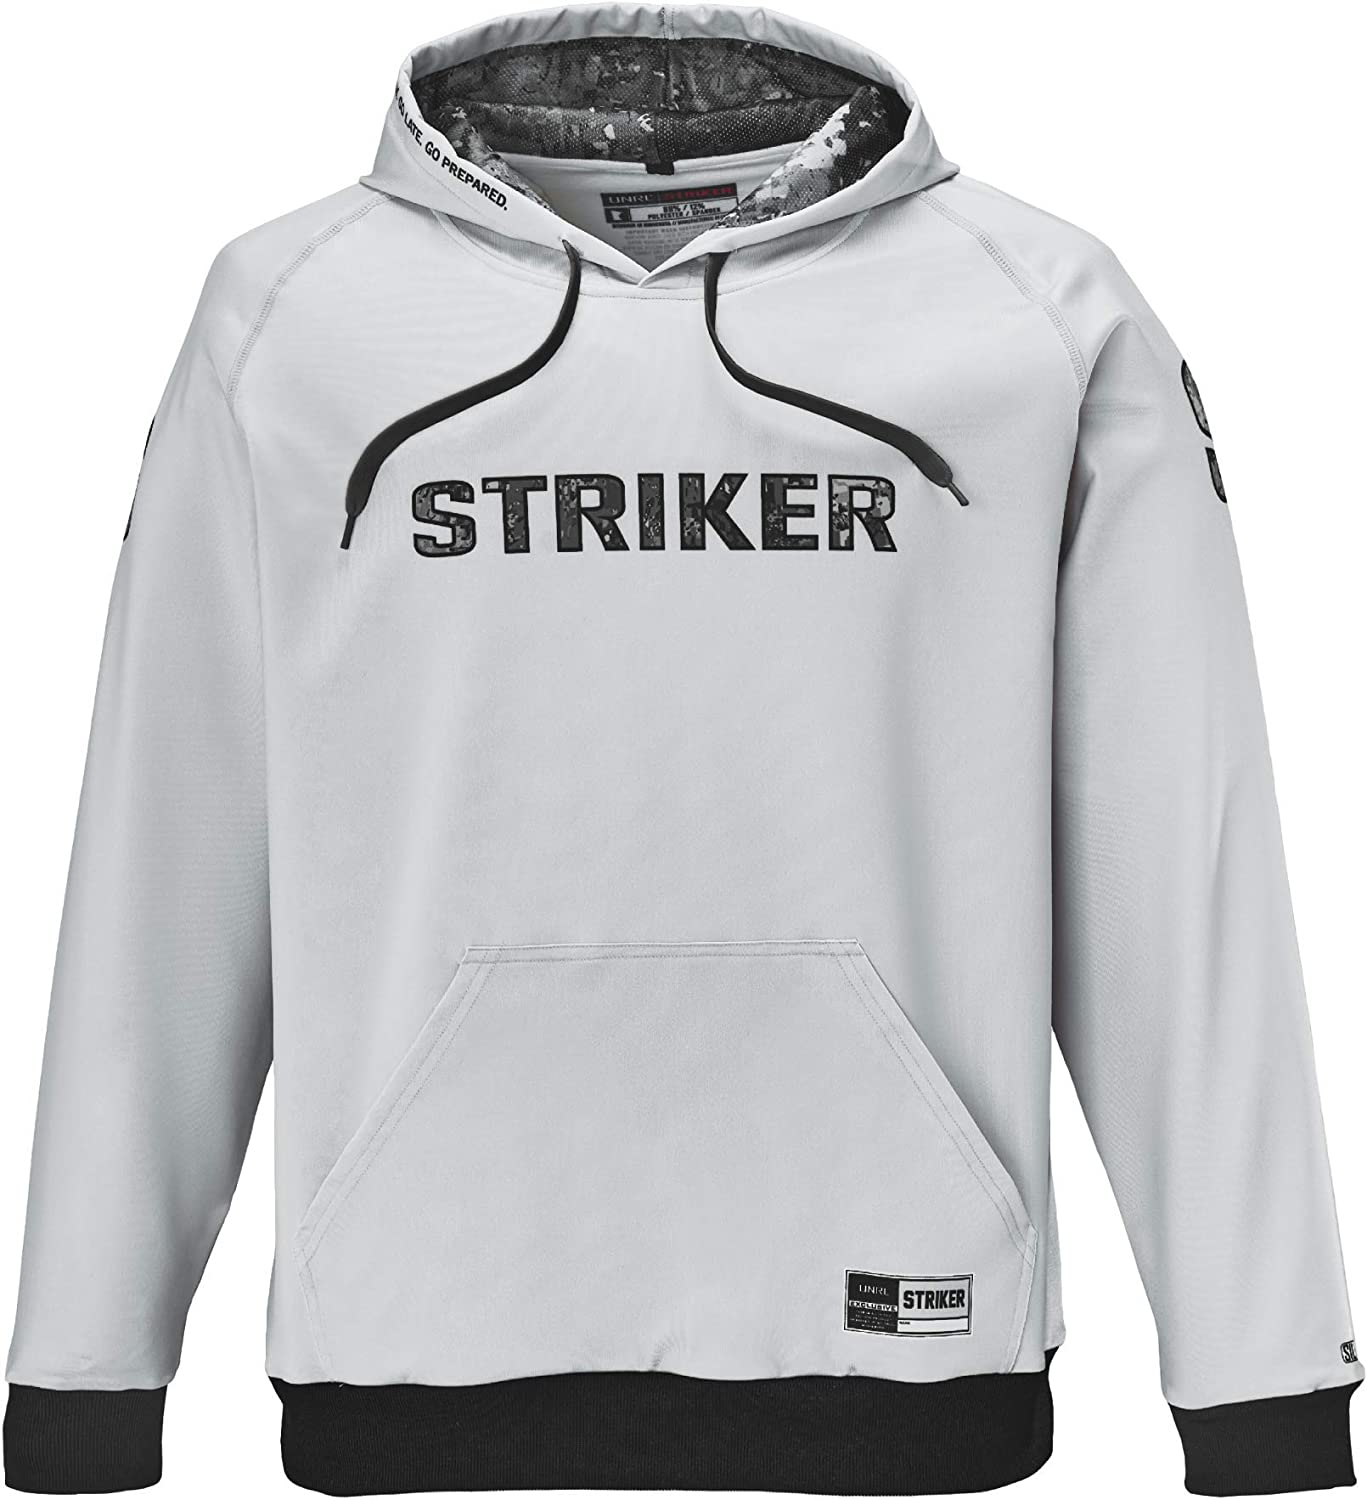 Striker Fanatic Hooded Fleece Sweatshirt, Super-Stretch Polyester with Fleece Interior for Fishing and Daily Wear